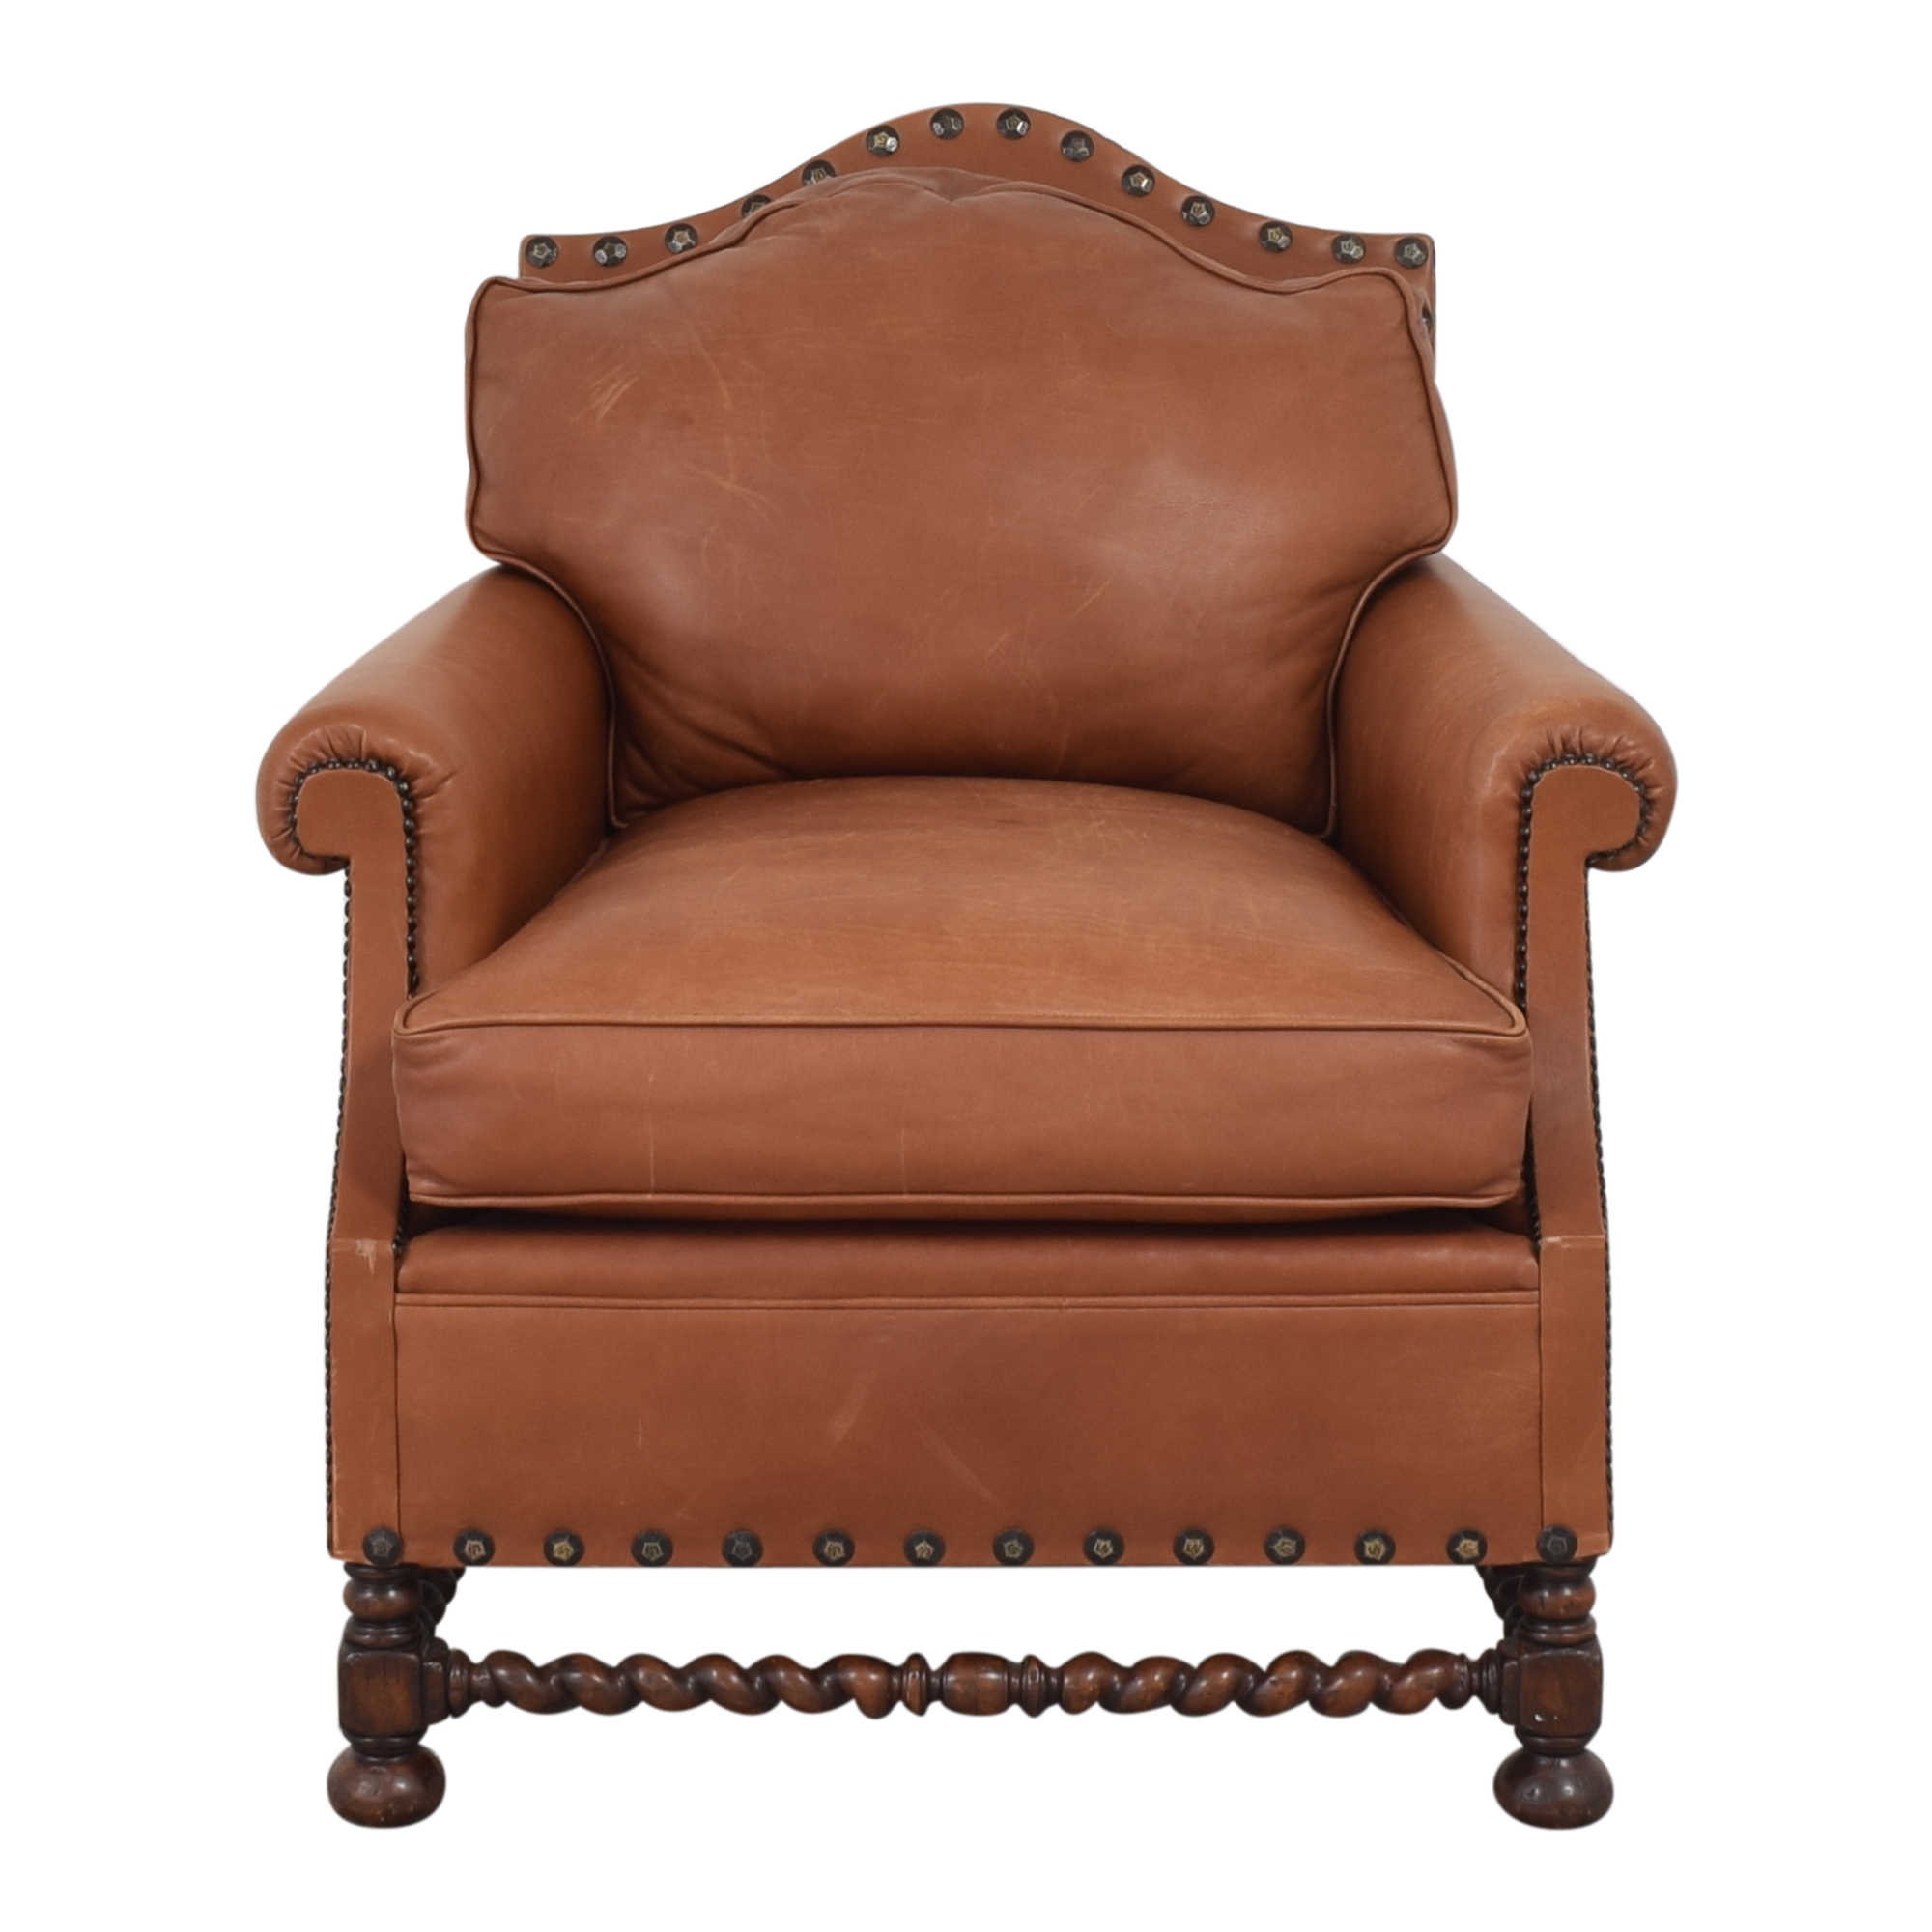 Vintage Spanish Revival Style Accent Chair